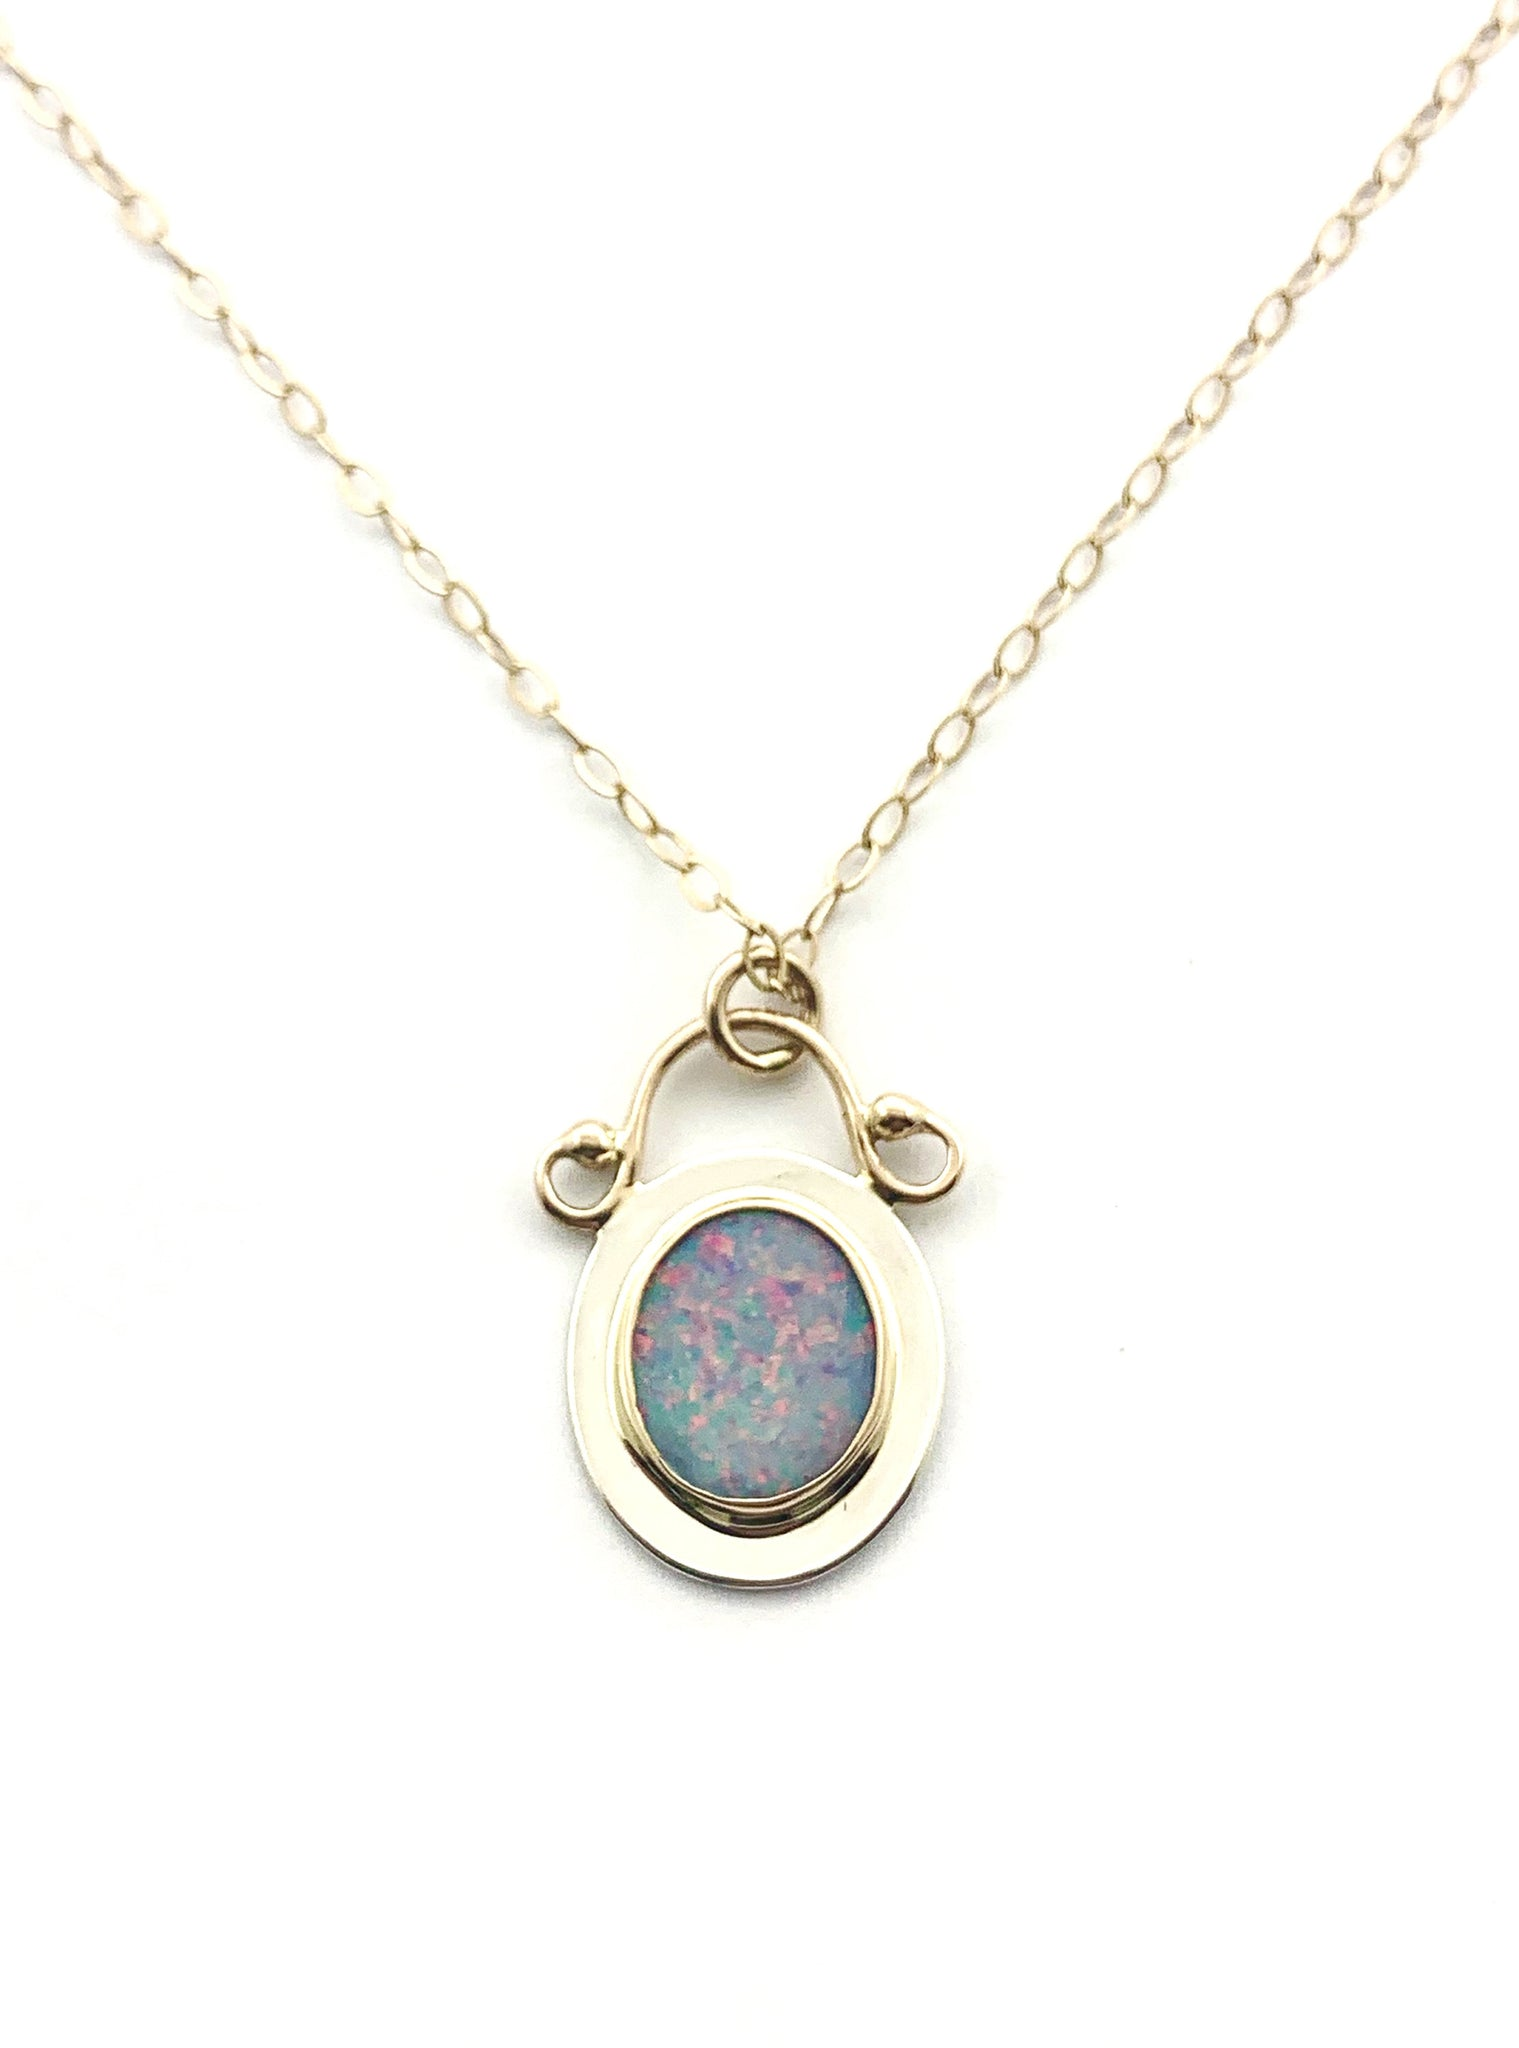 Australian Opal Pendant, Gold and Silver Opal Jewelry, Natural Opal, Womens 14k pendant, October birthstone gift, Ladies Opal necklace